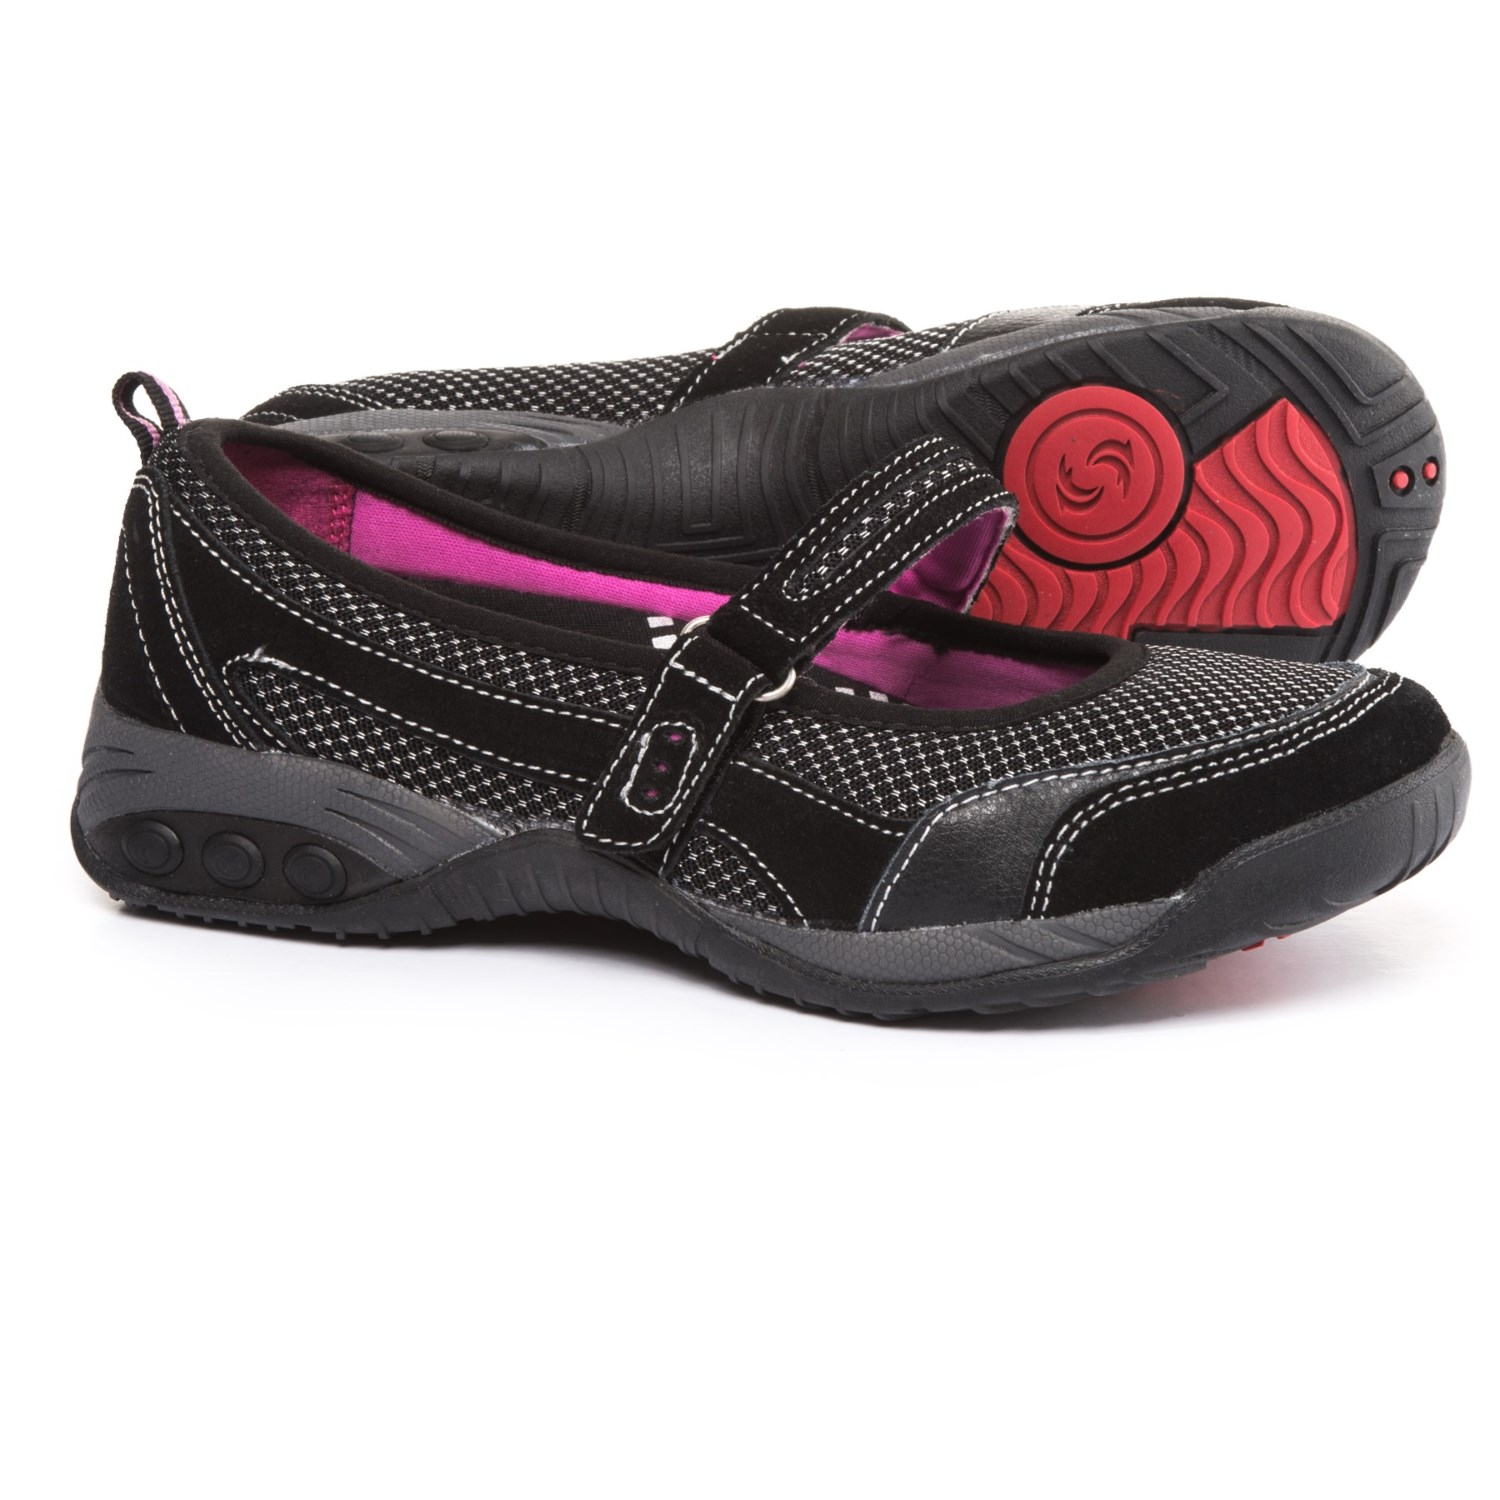 Therafit Mary Jane Shoes Reviews